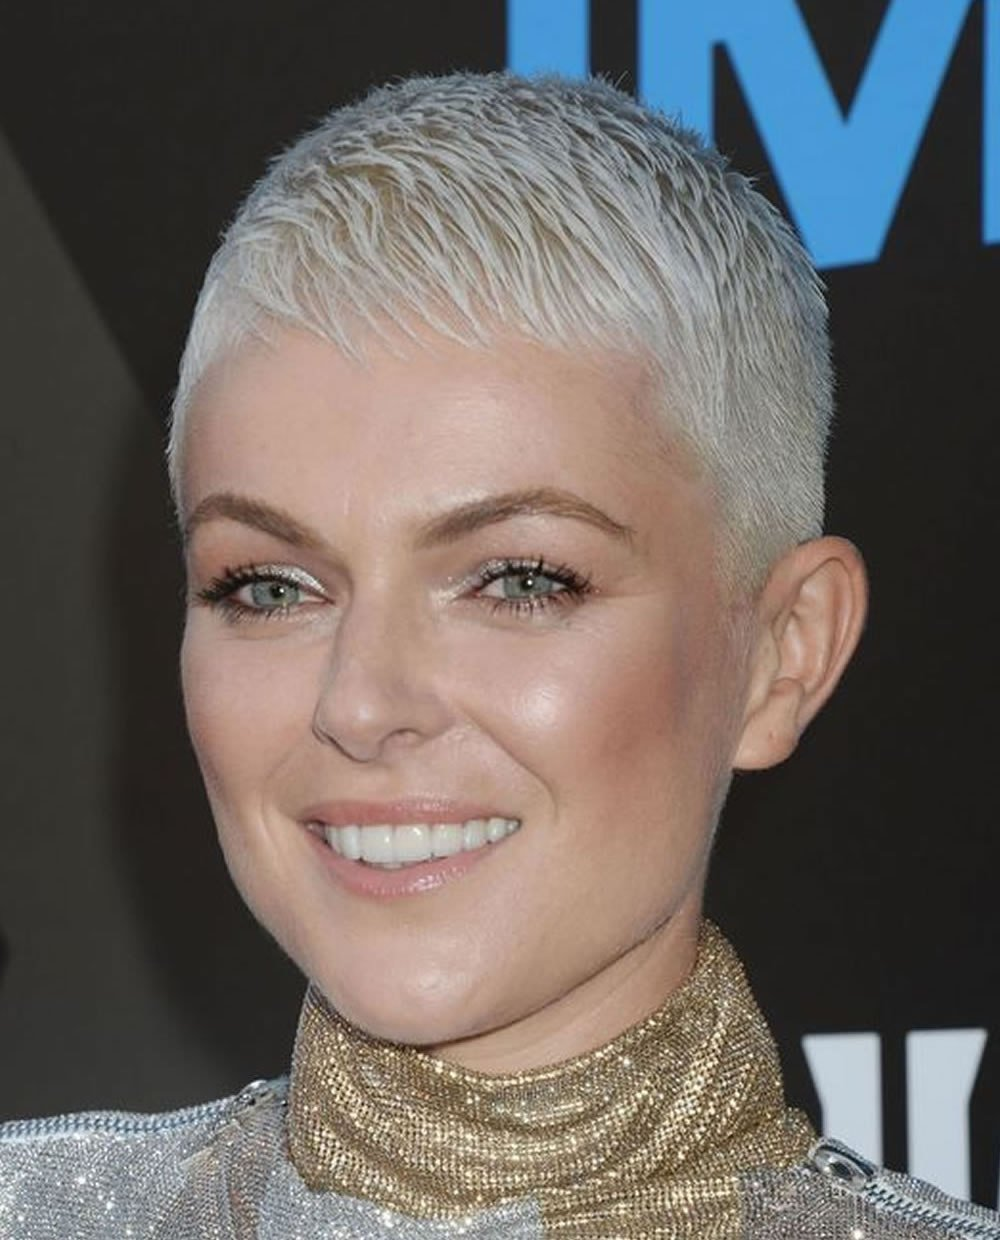 The Best Top 100 Beautiful Short Haircuts For Women 2018 Images Pictures